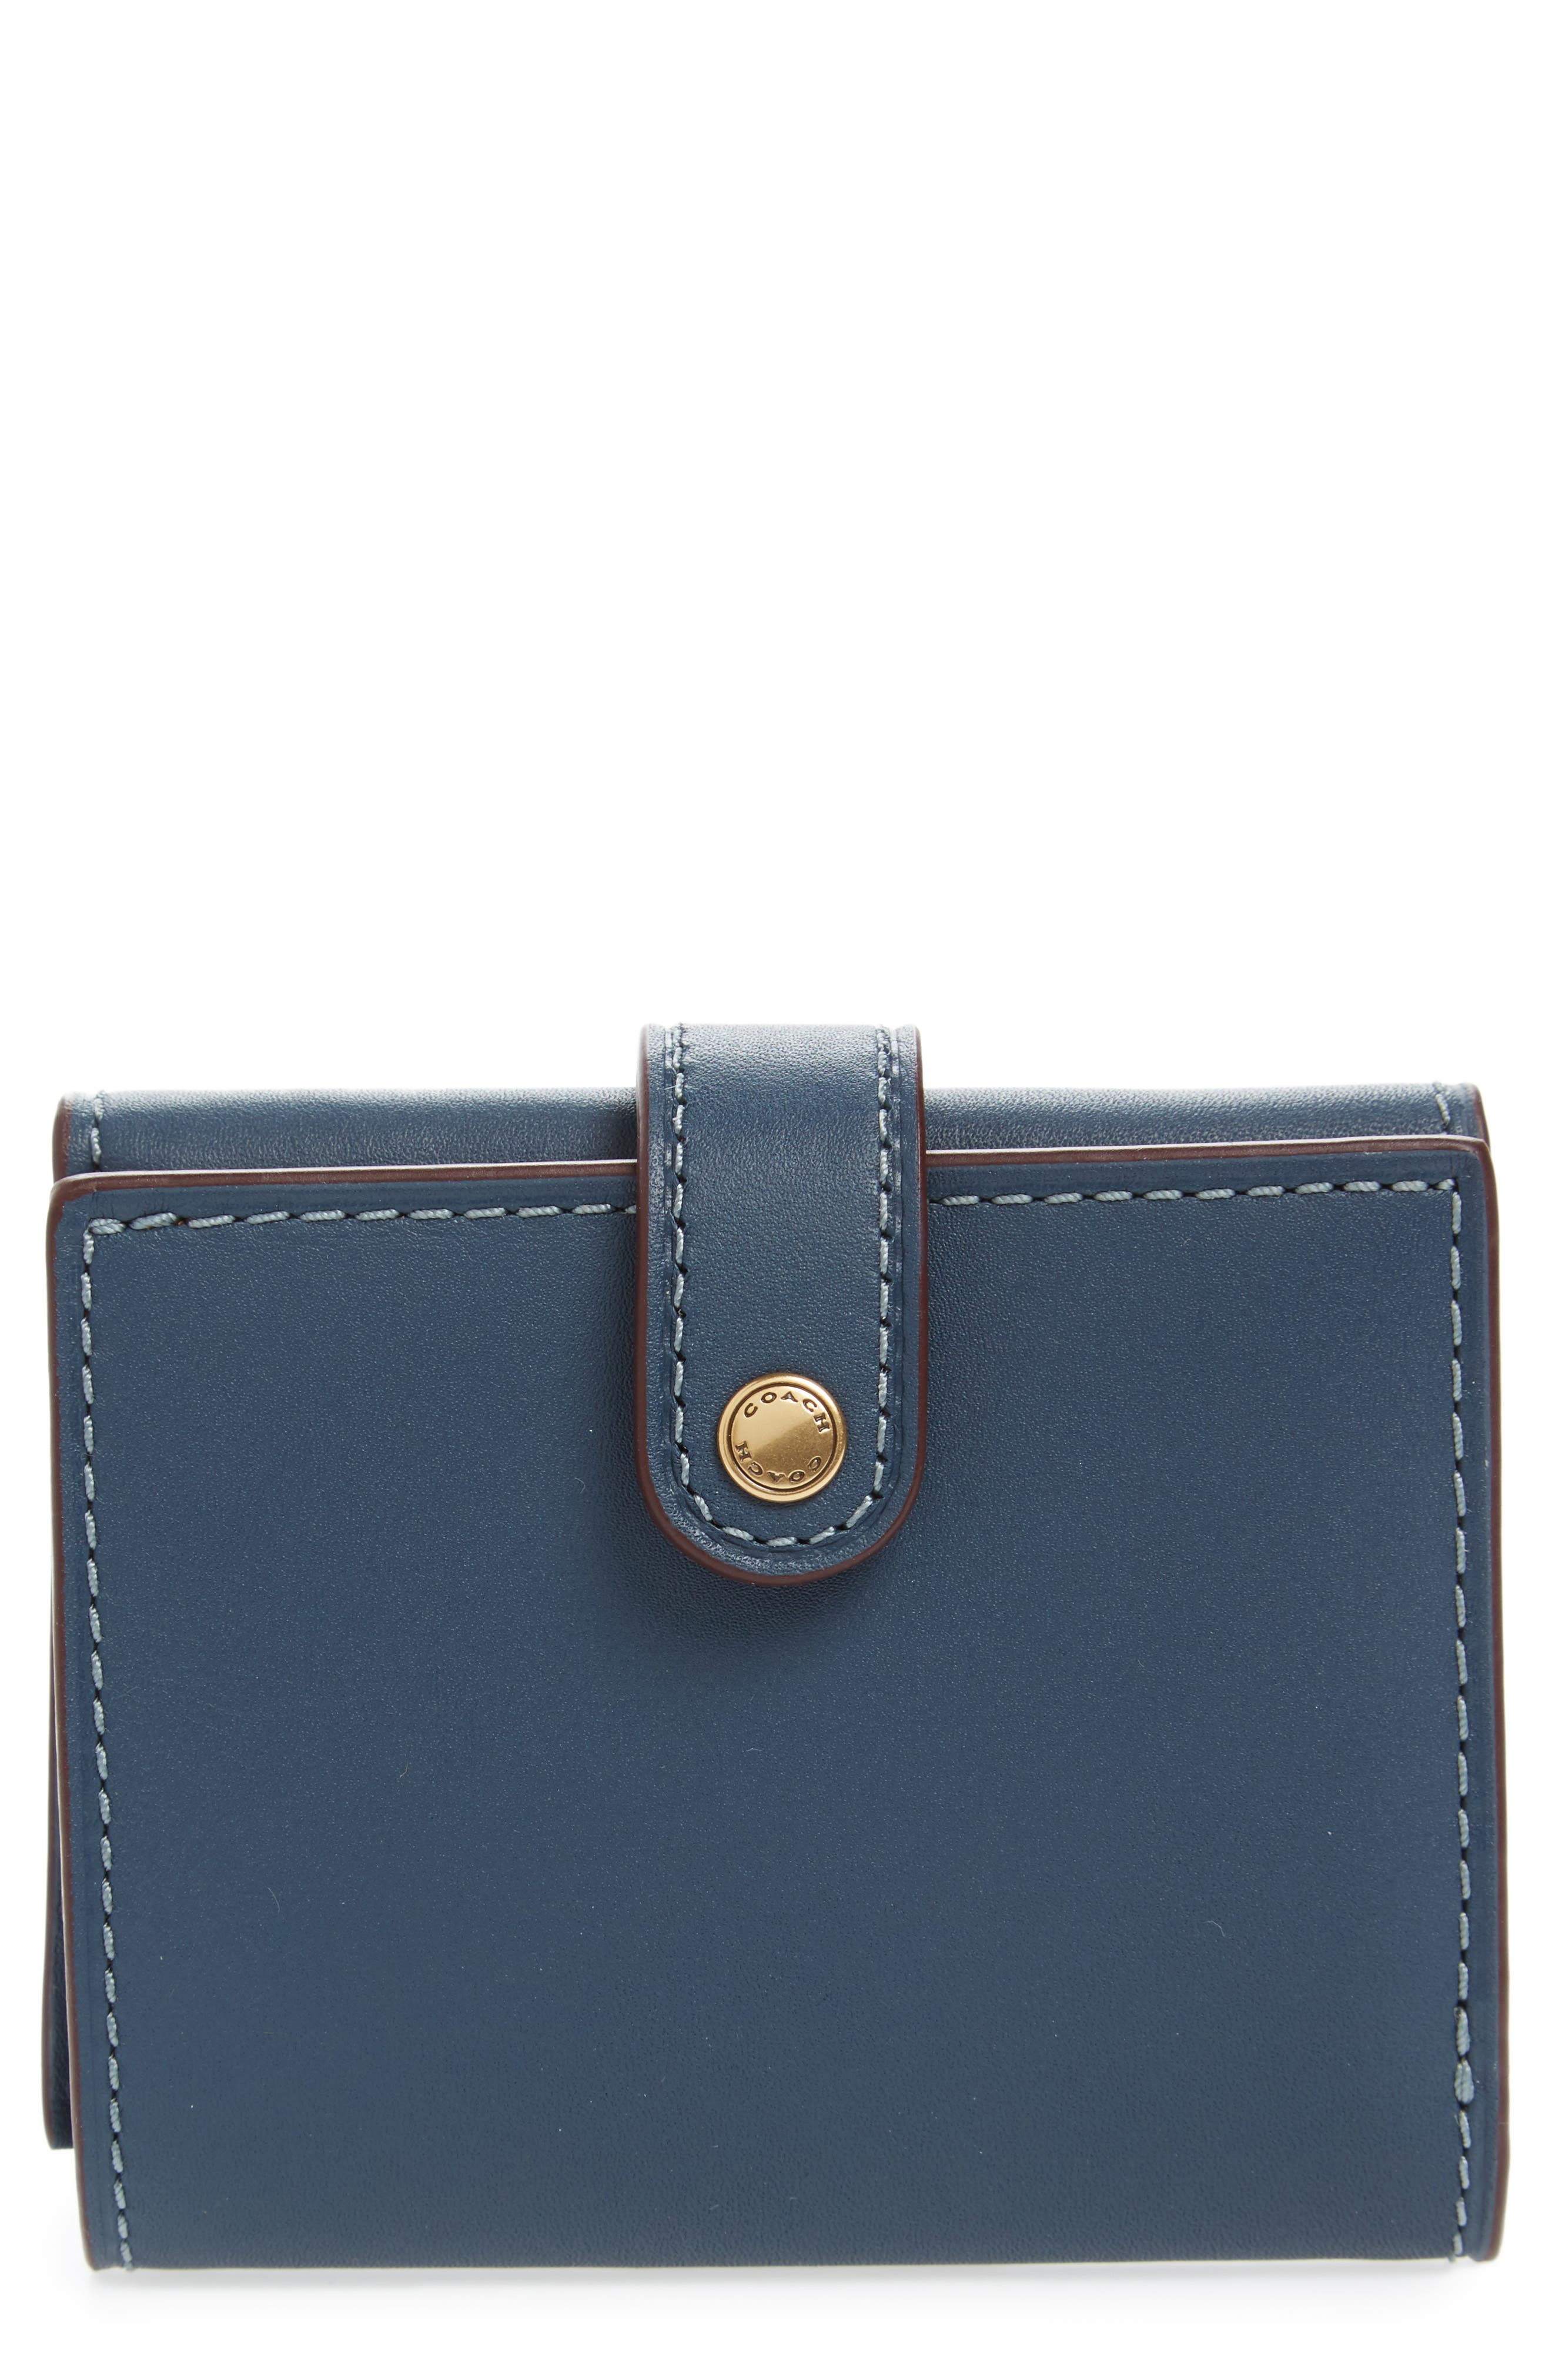 COACH 1941 Small Leather Trifold Wallet